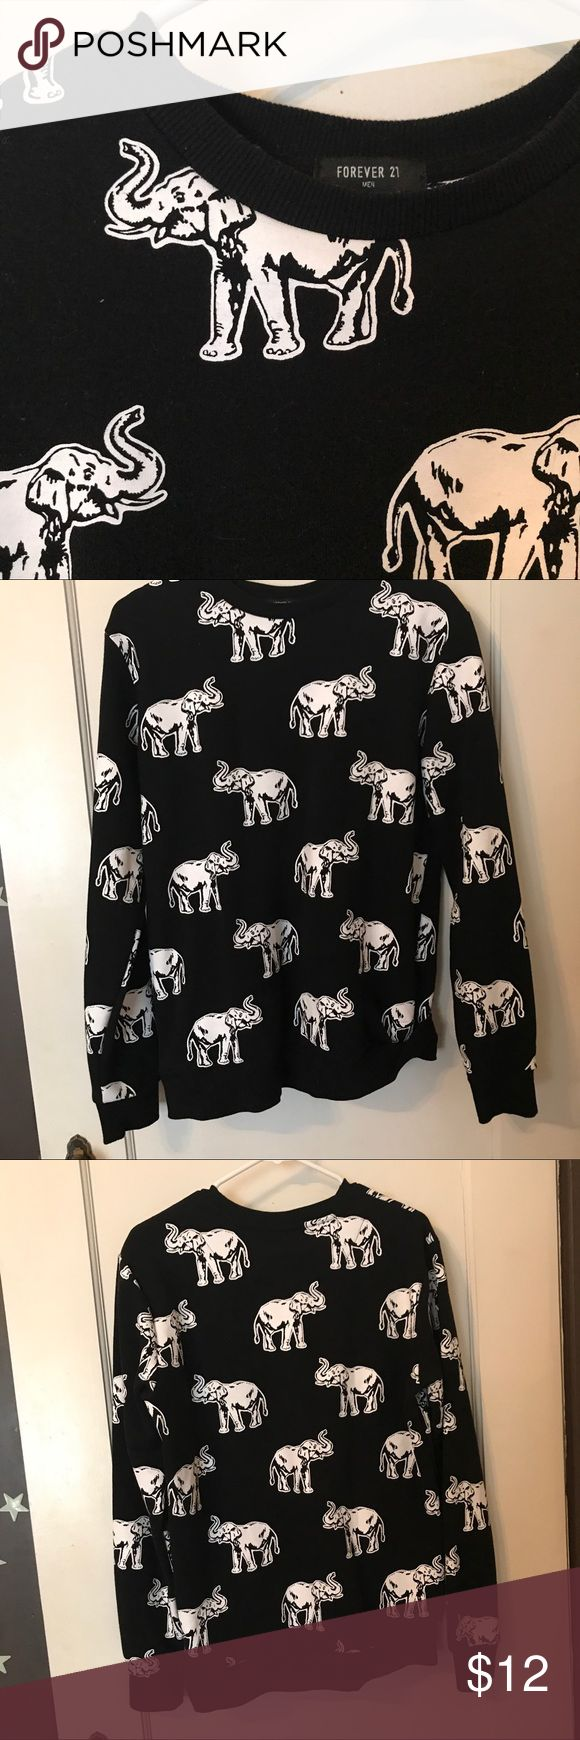 Elephant sweater I bought this in men's for a looser fit. I generally wear a women's large and this fits very comfortably. Worn a couple times, washed once and never dried Forever 21 Sweaters Crewneck